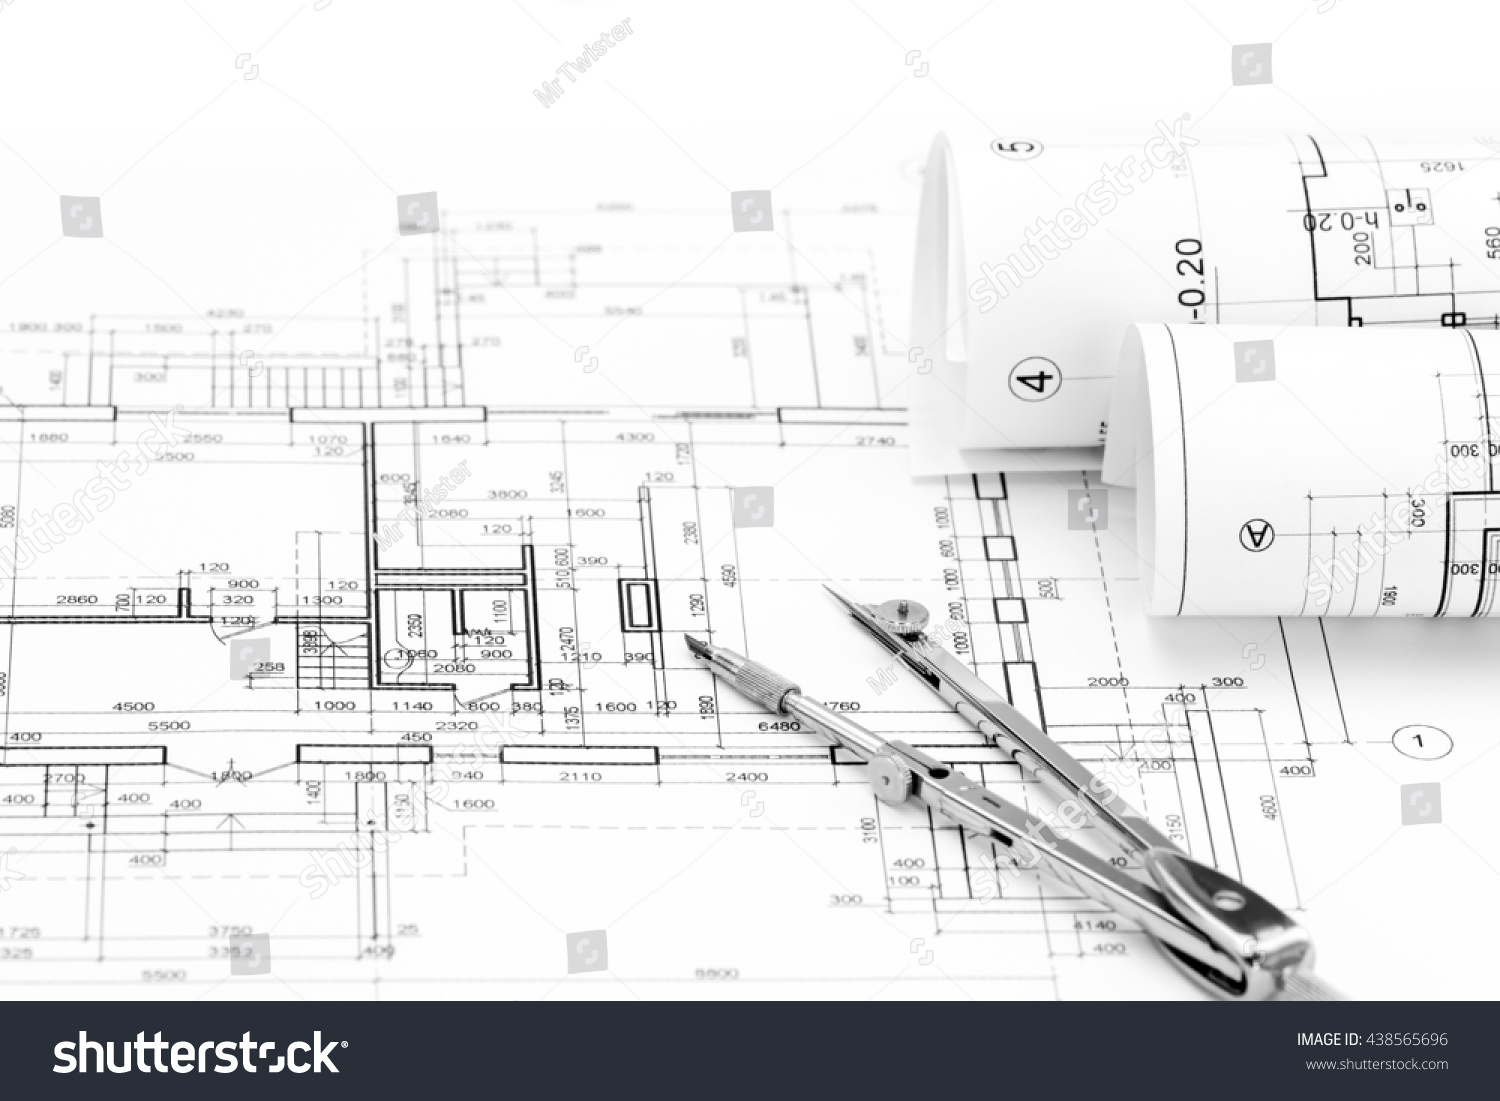 Suelo Tecnico Dwg Rolls Architectural Blueprints House Plan Drawing Imagen